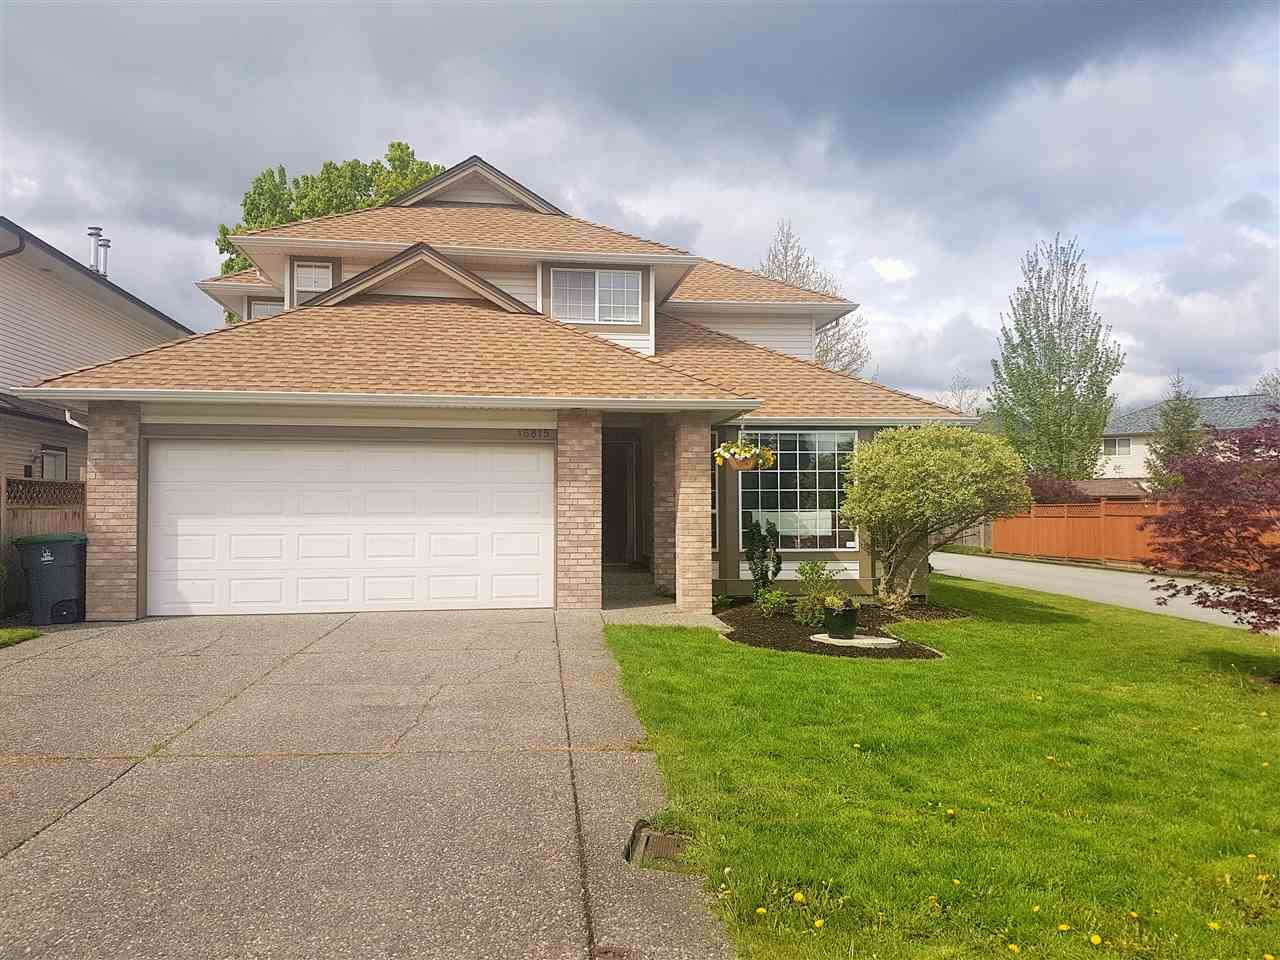 Main Photo: 16815 61 Avenue in Surrey: Cloverdale BC House for sale (Cloverdale)  : MLS®# R2263335